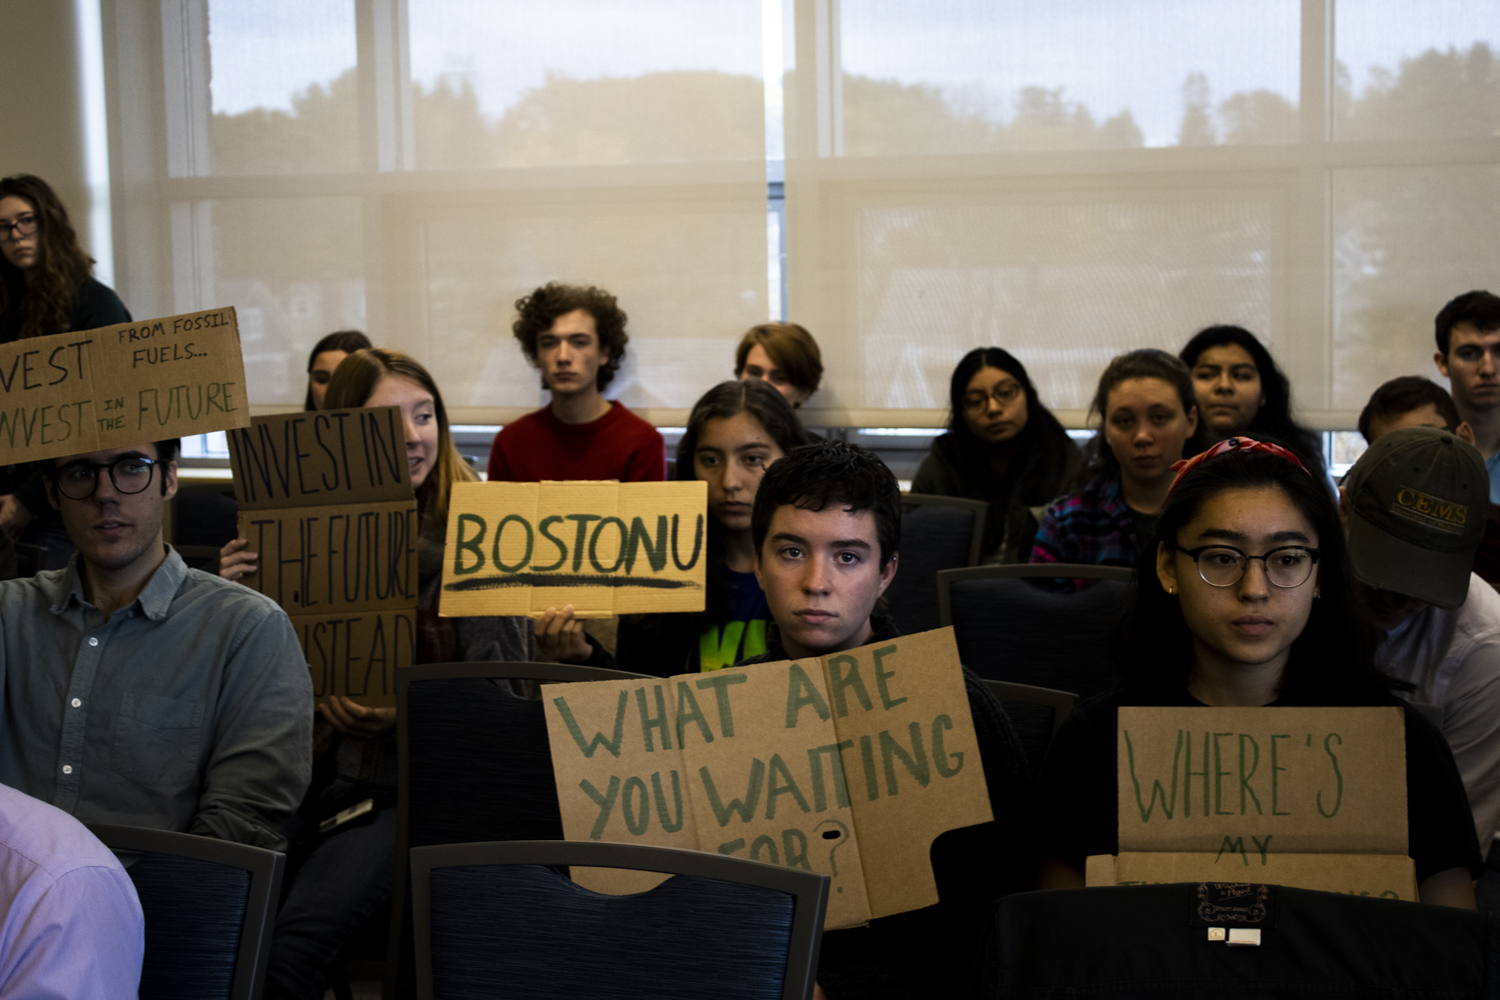 Students protest silently during a board of trustees meeting in Livak Ballroom, Oct. 26. The meeting was one of several that took place over the course of Oct. 25-26.